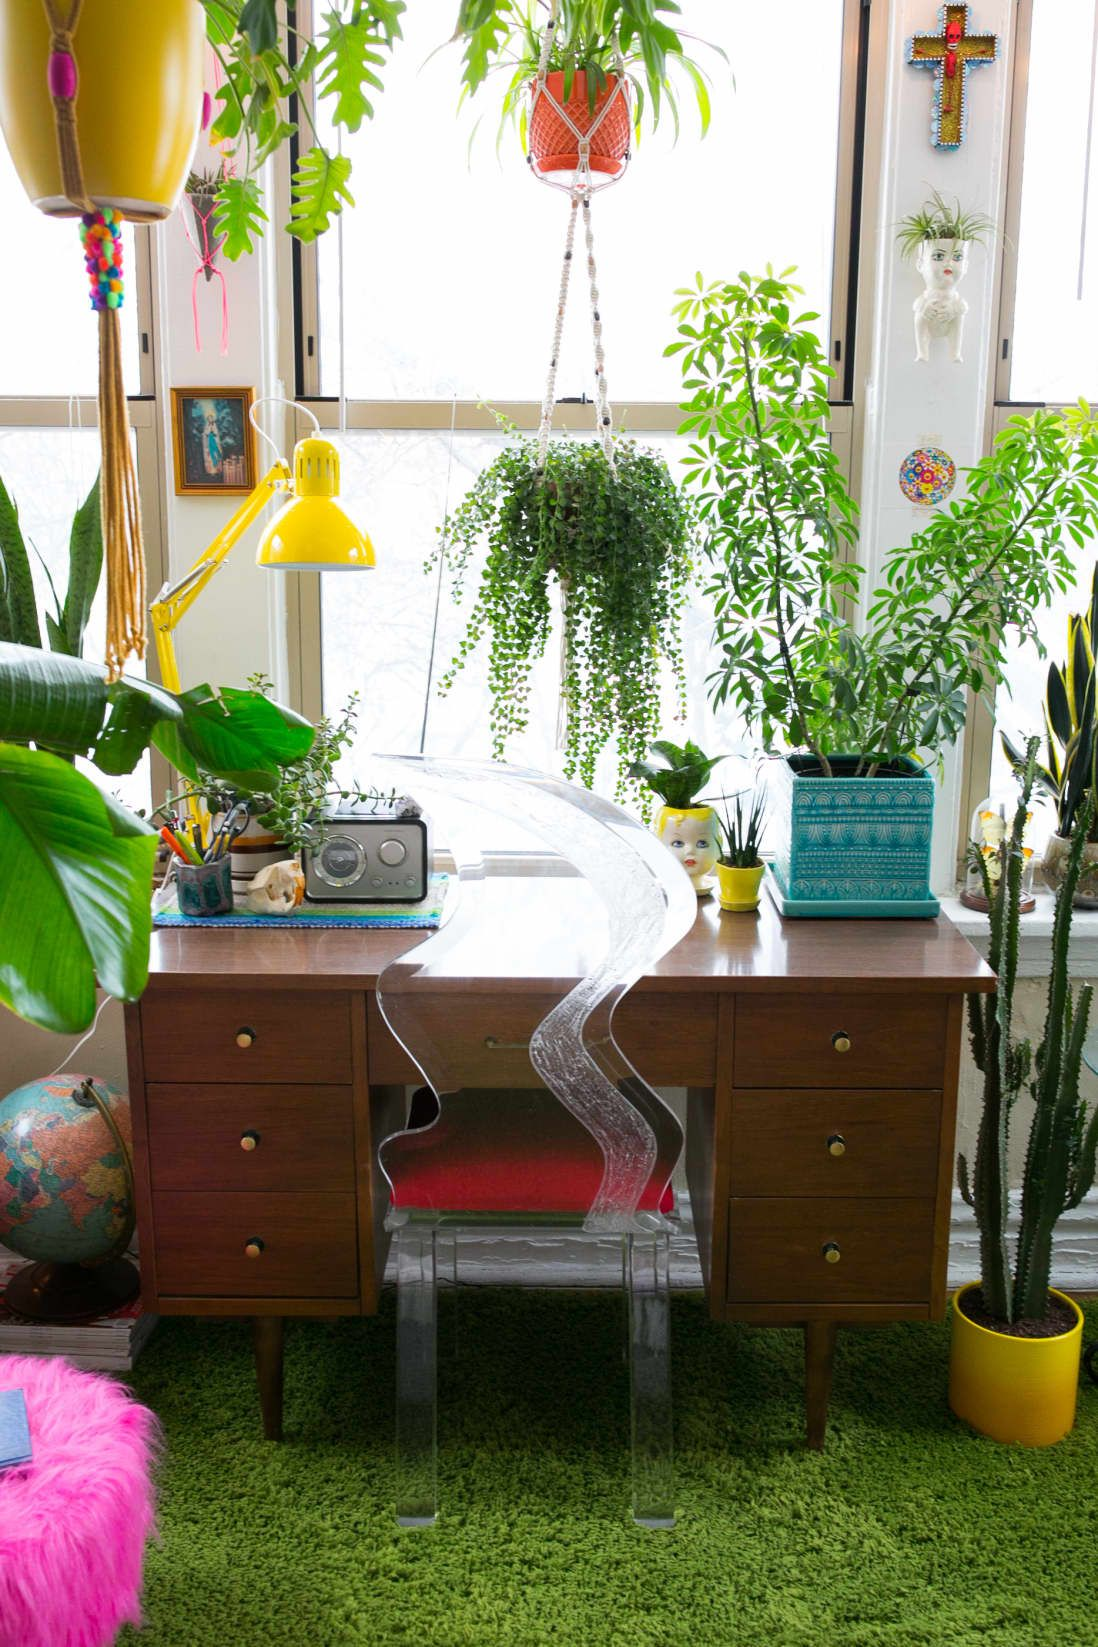 These 6 Perfect Hanging Plants Are Also Pretty Easy to Care For -   17 planting Indoor desk ideas